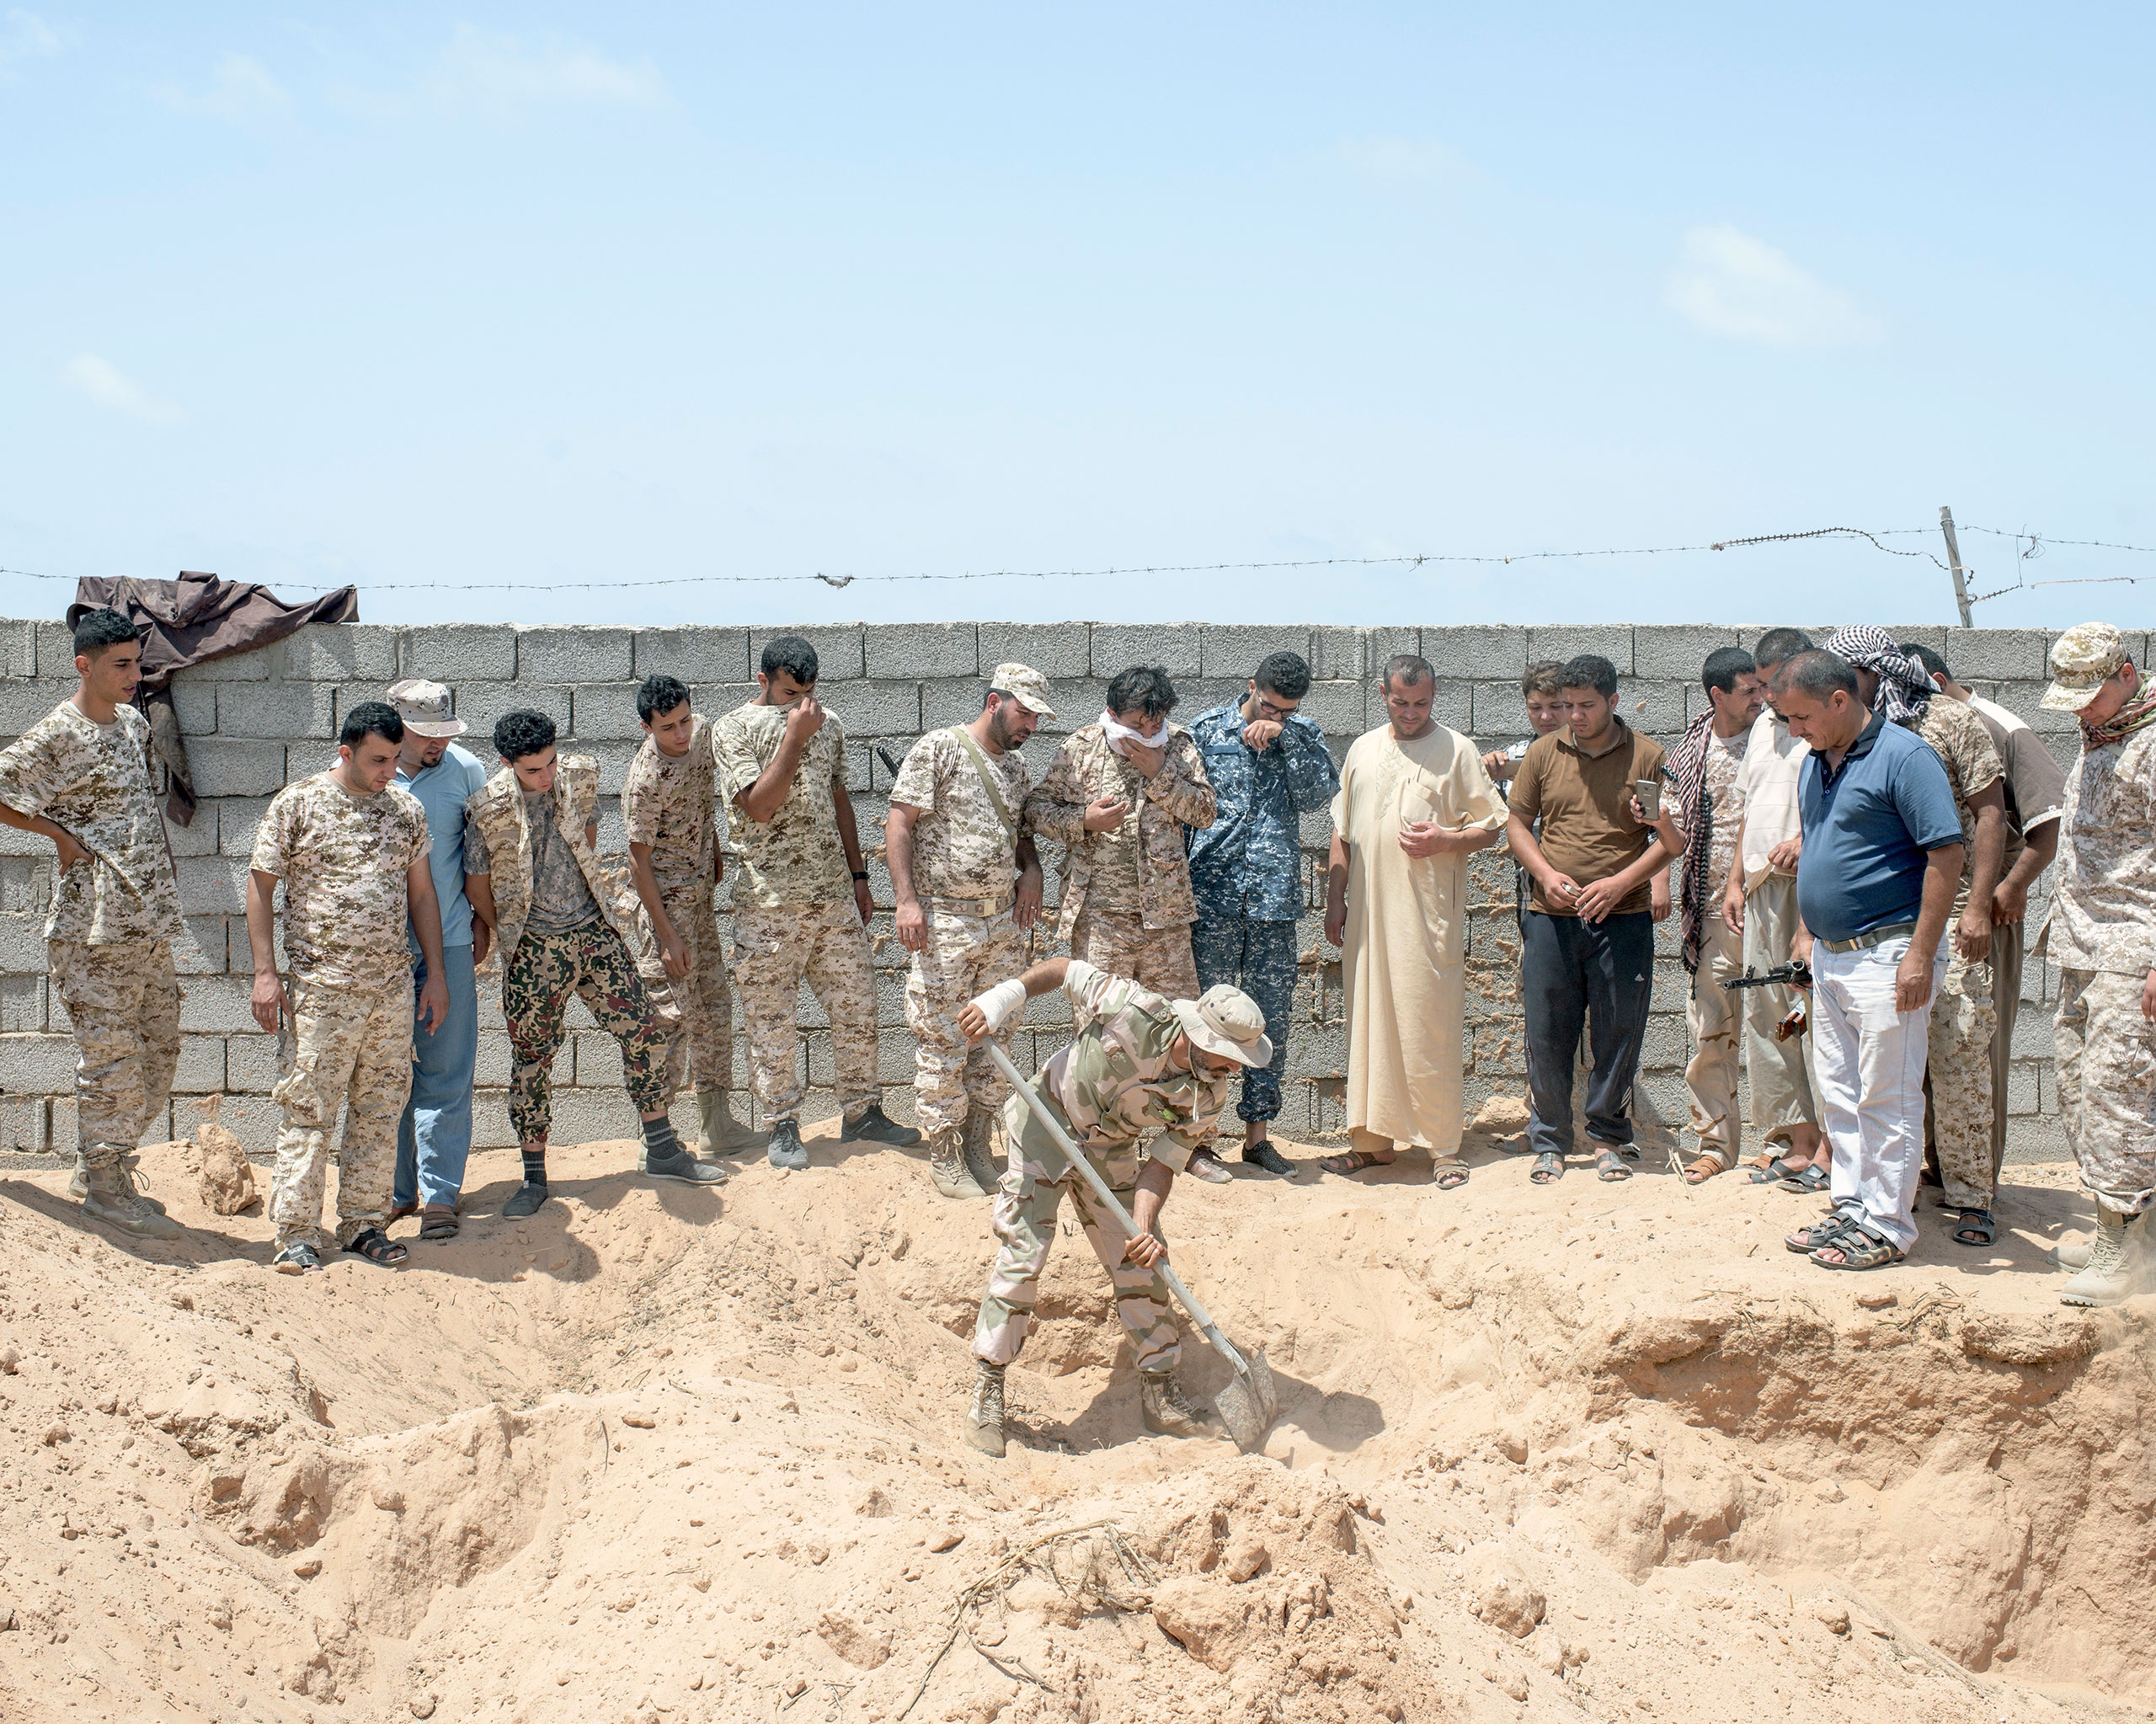 Libyan fighters unearth an ISIS mass grave, Sirt, Libya, July 2016.From  Inside ISIS' Last Bastion in Libya